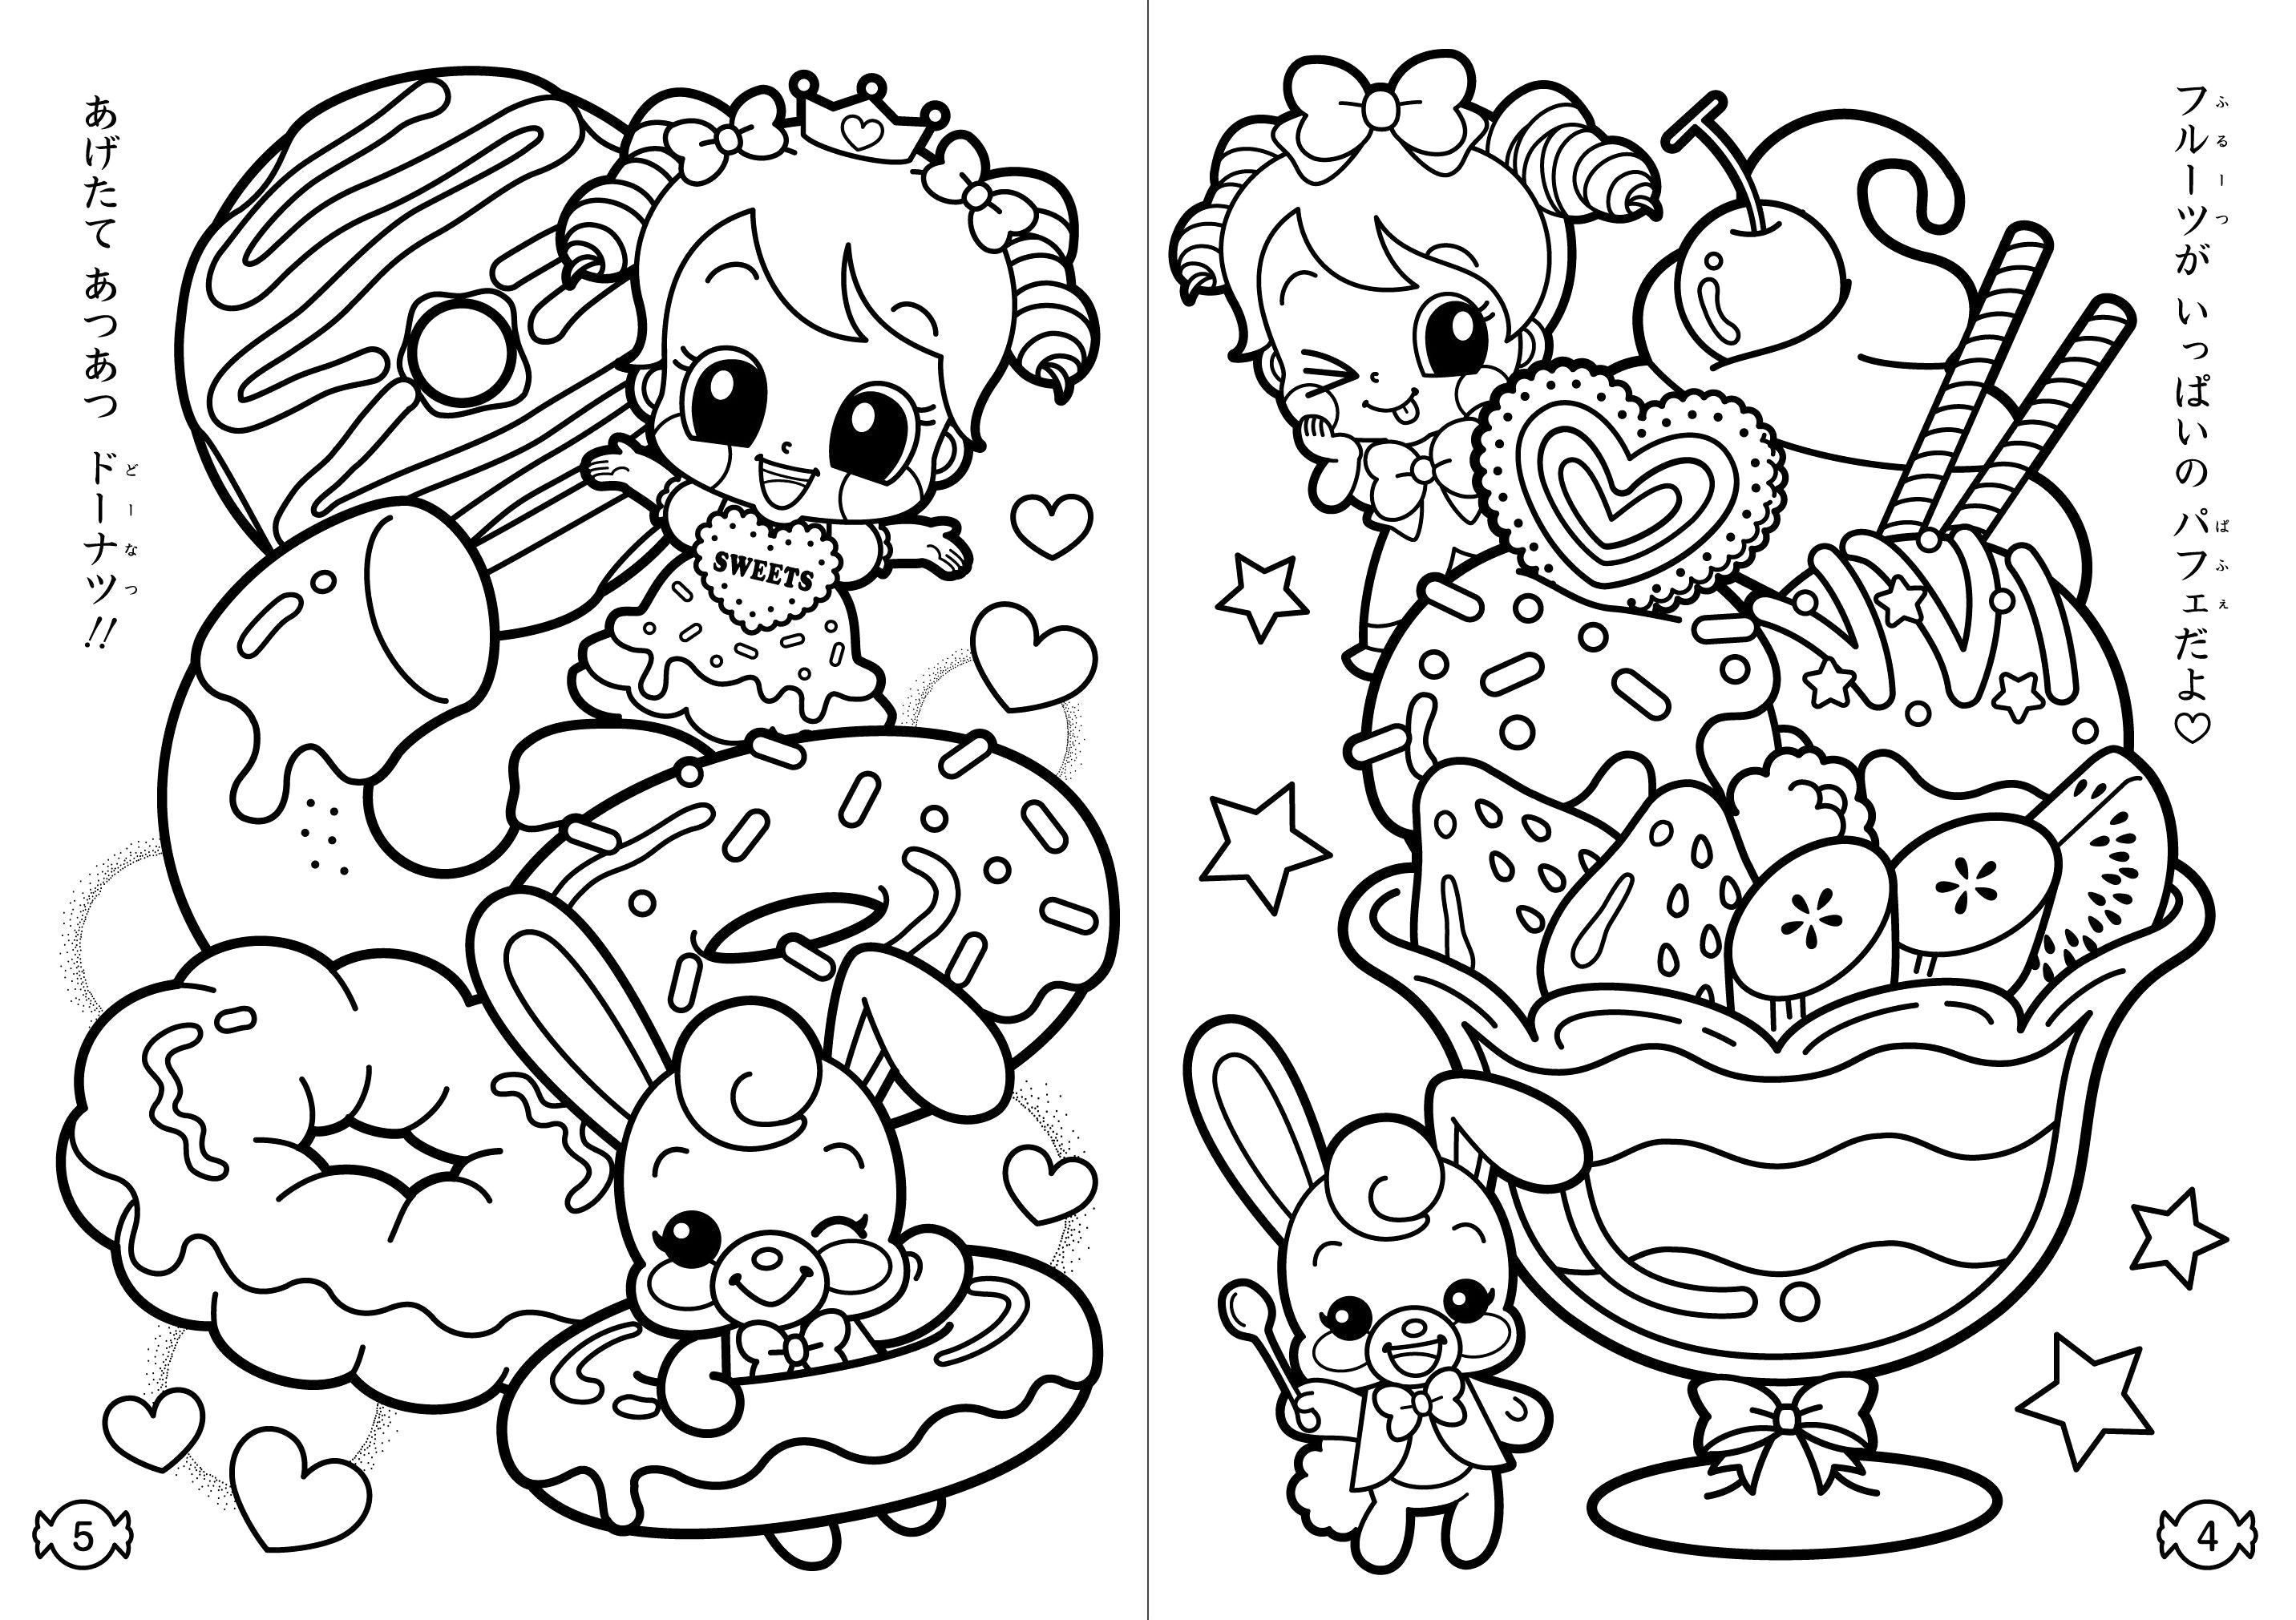 pictures of food coloring free printable food coloring pages for kids pictures of food coloring